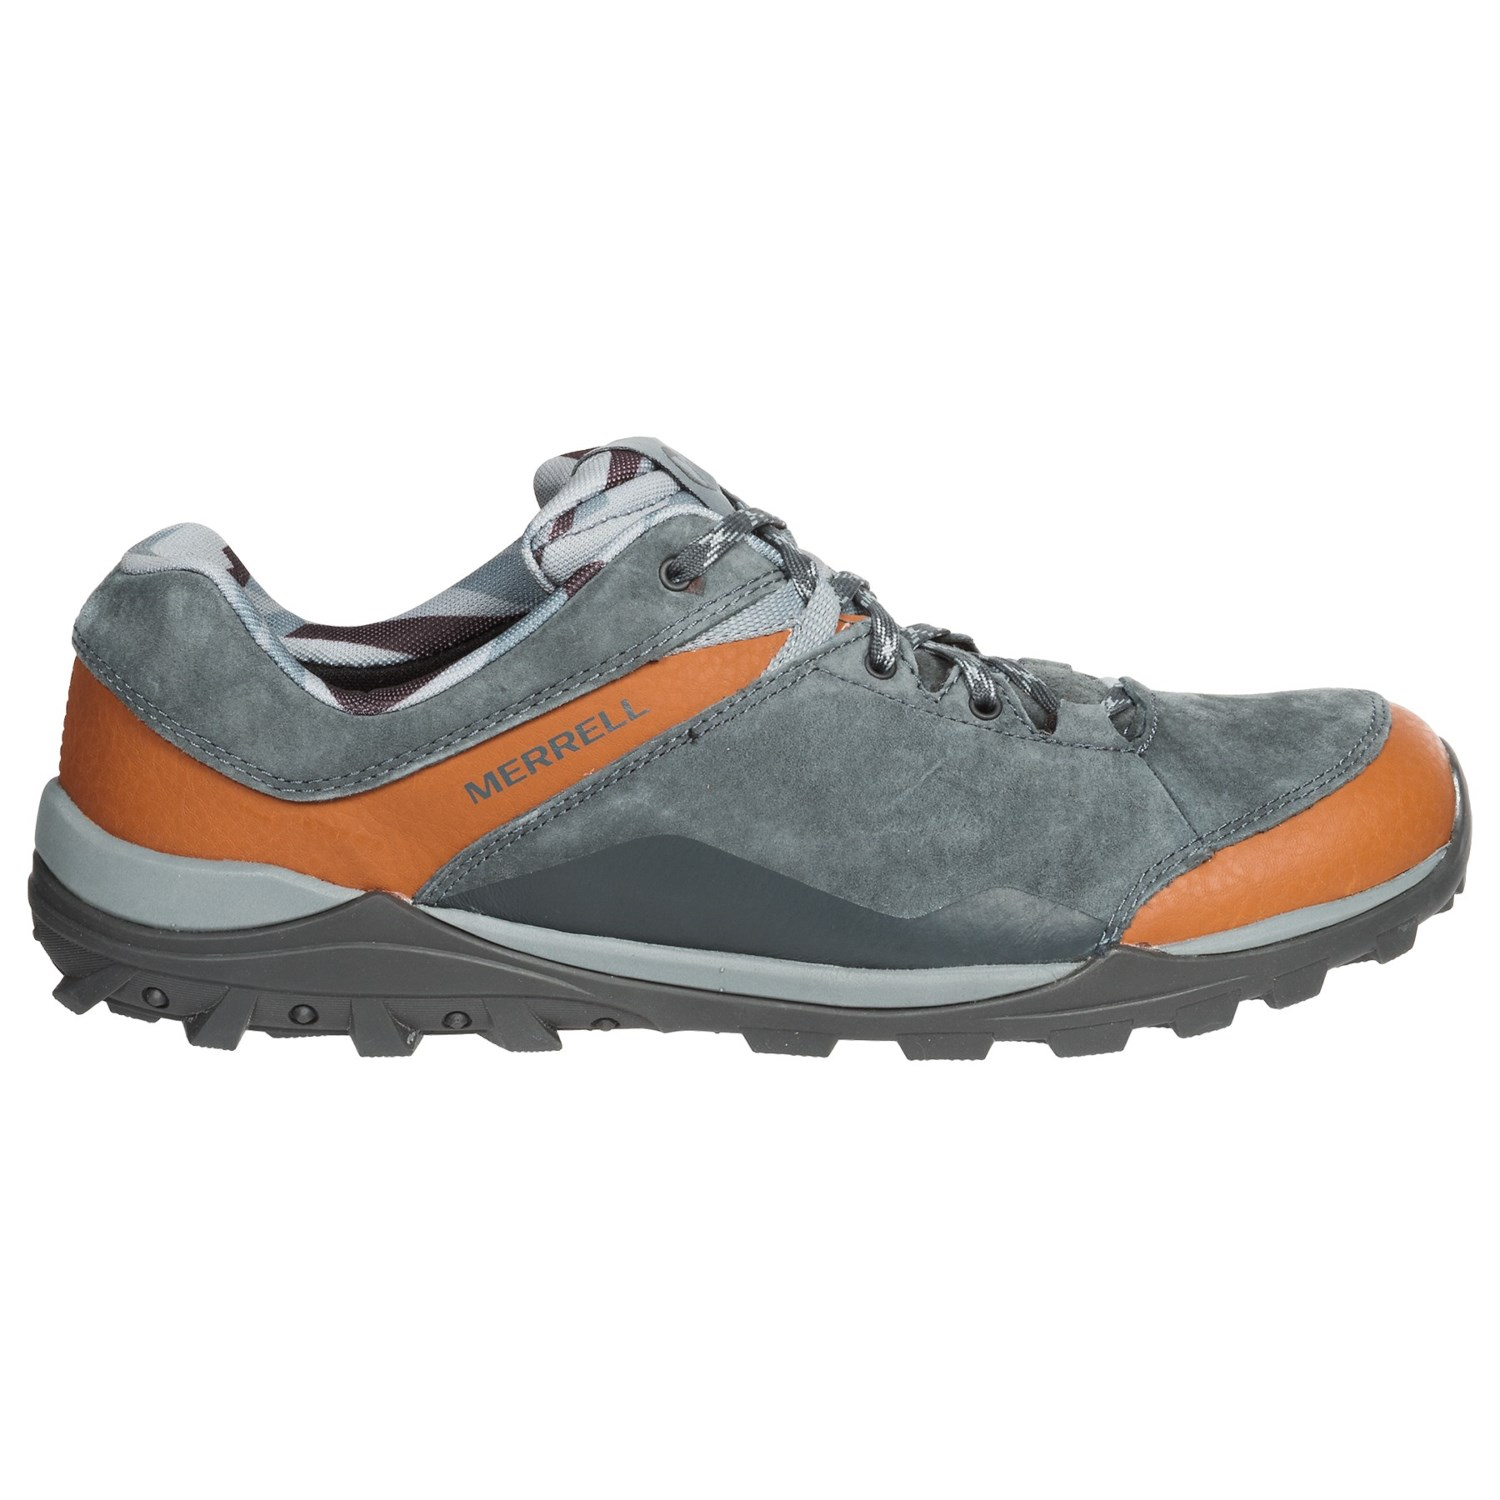 Where To Buy Merrell Shoes In Australia